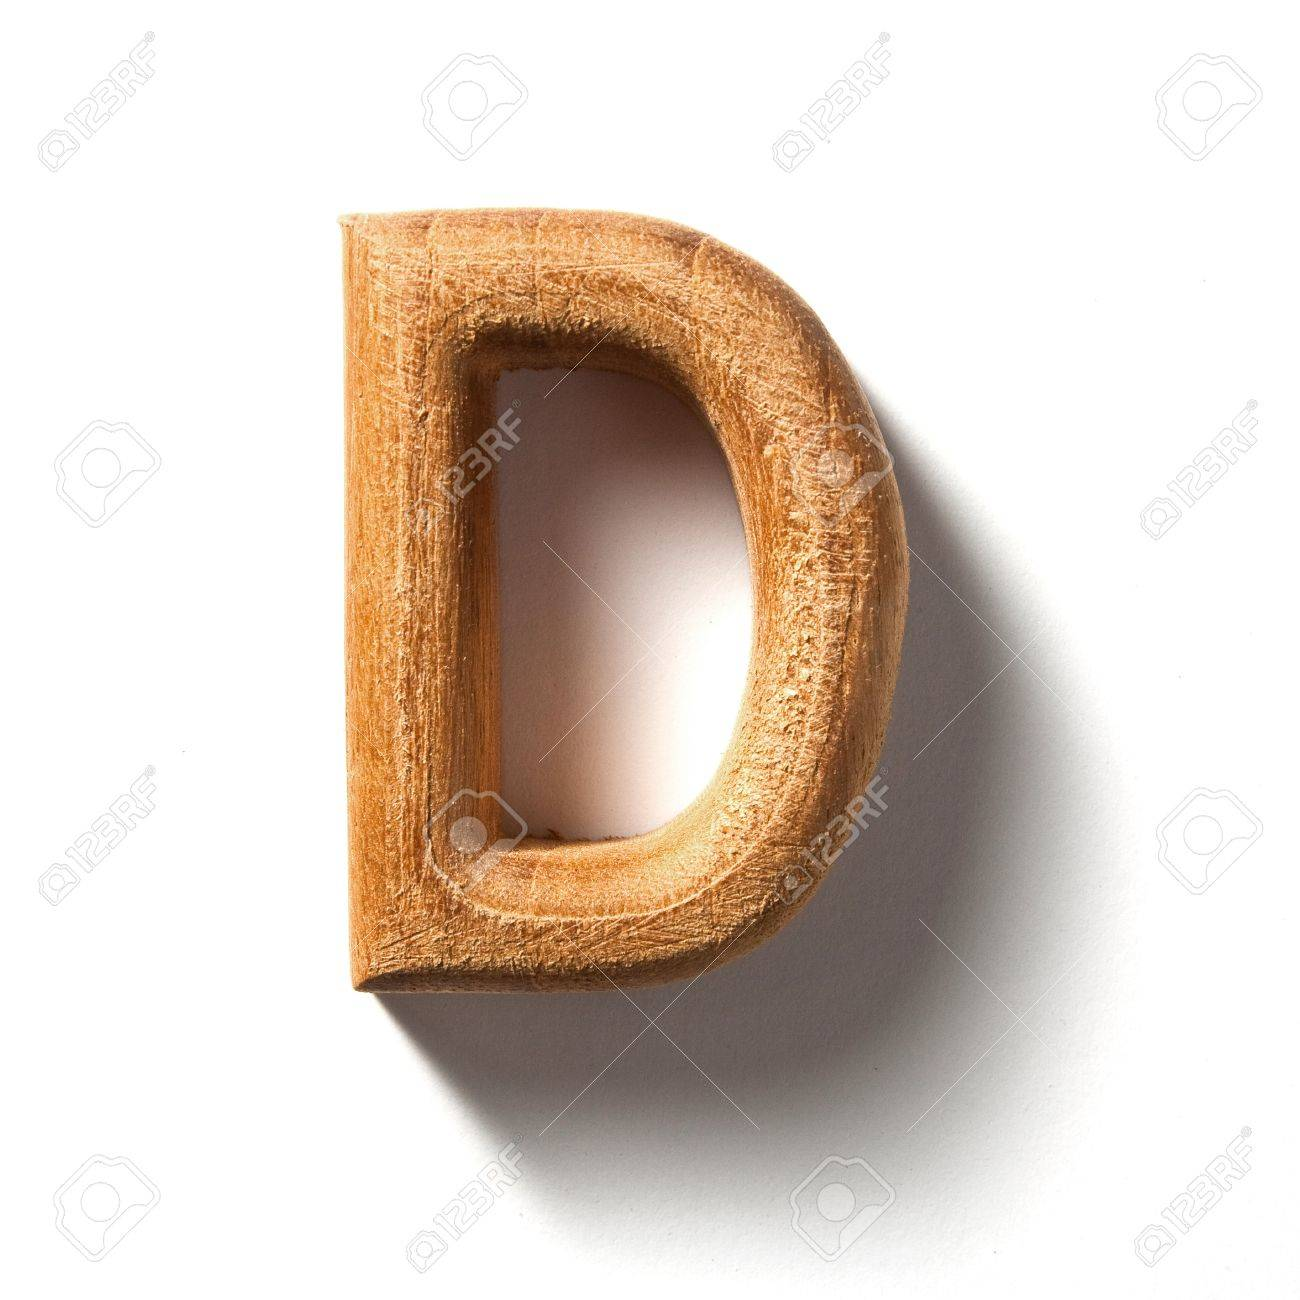 D background images - Stock Photo Wooden Alphabet Letter With Drop Shadow On White Background D